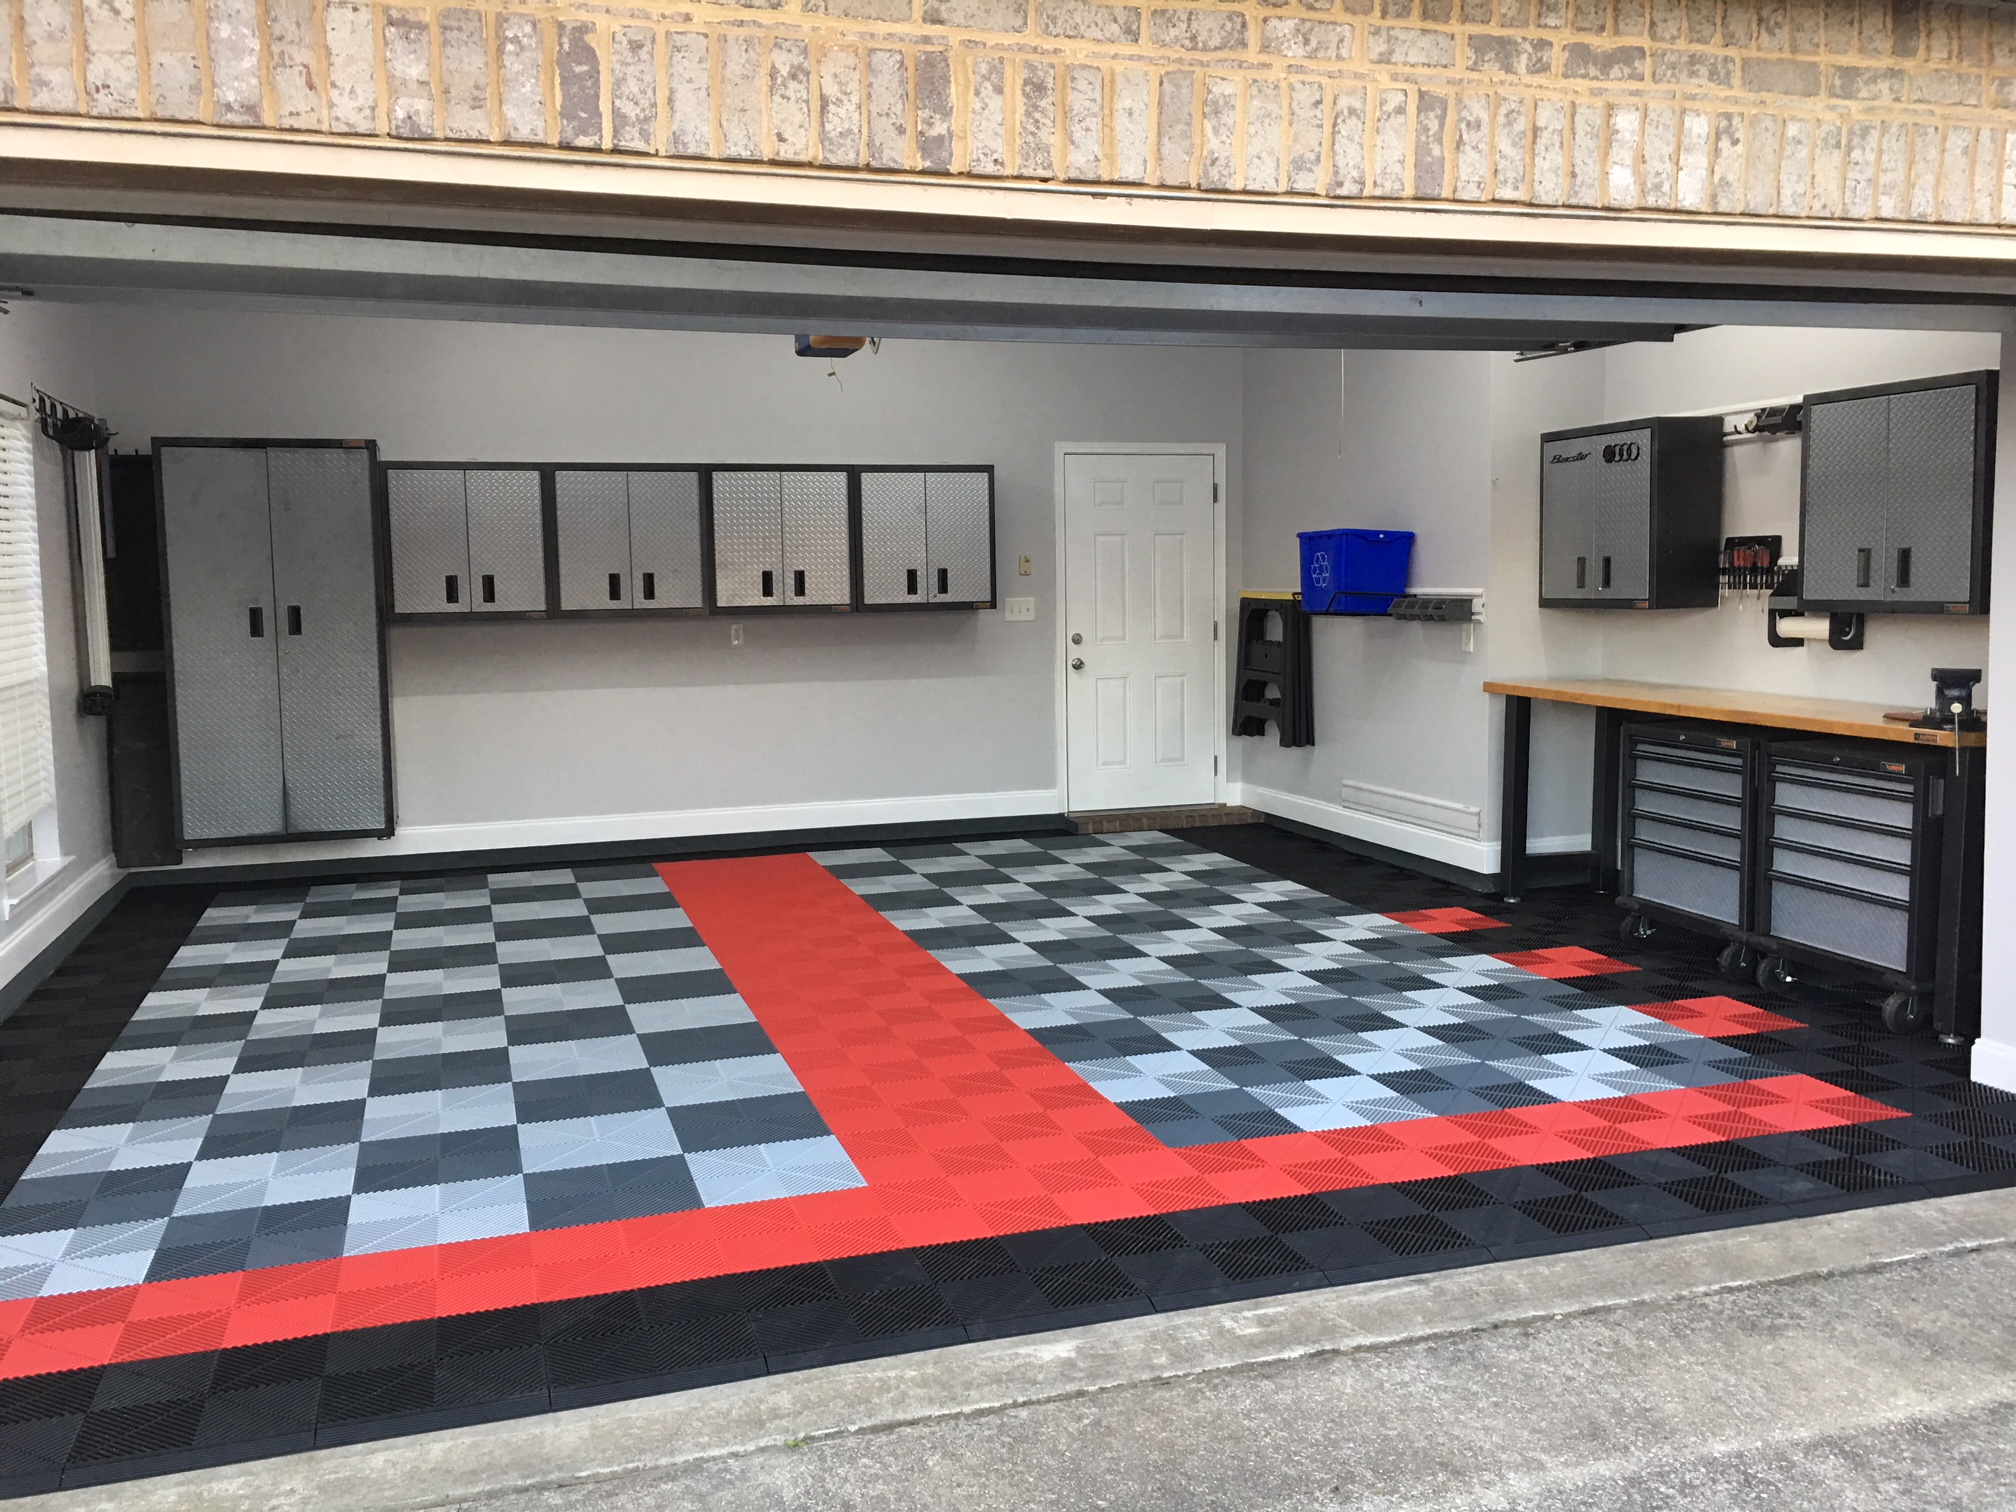 Scott Garage with White Porsche - Red,Black,Silver - Ribtrax Tiles